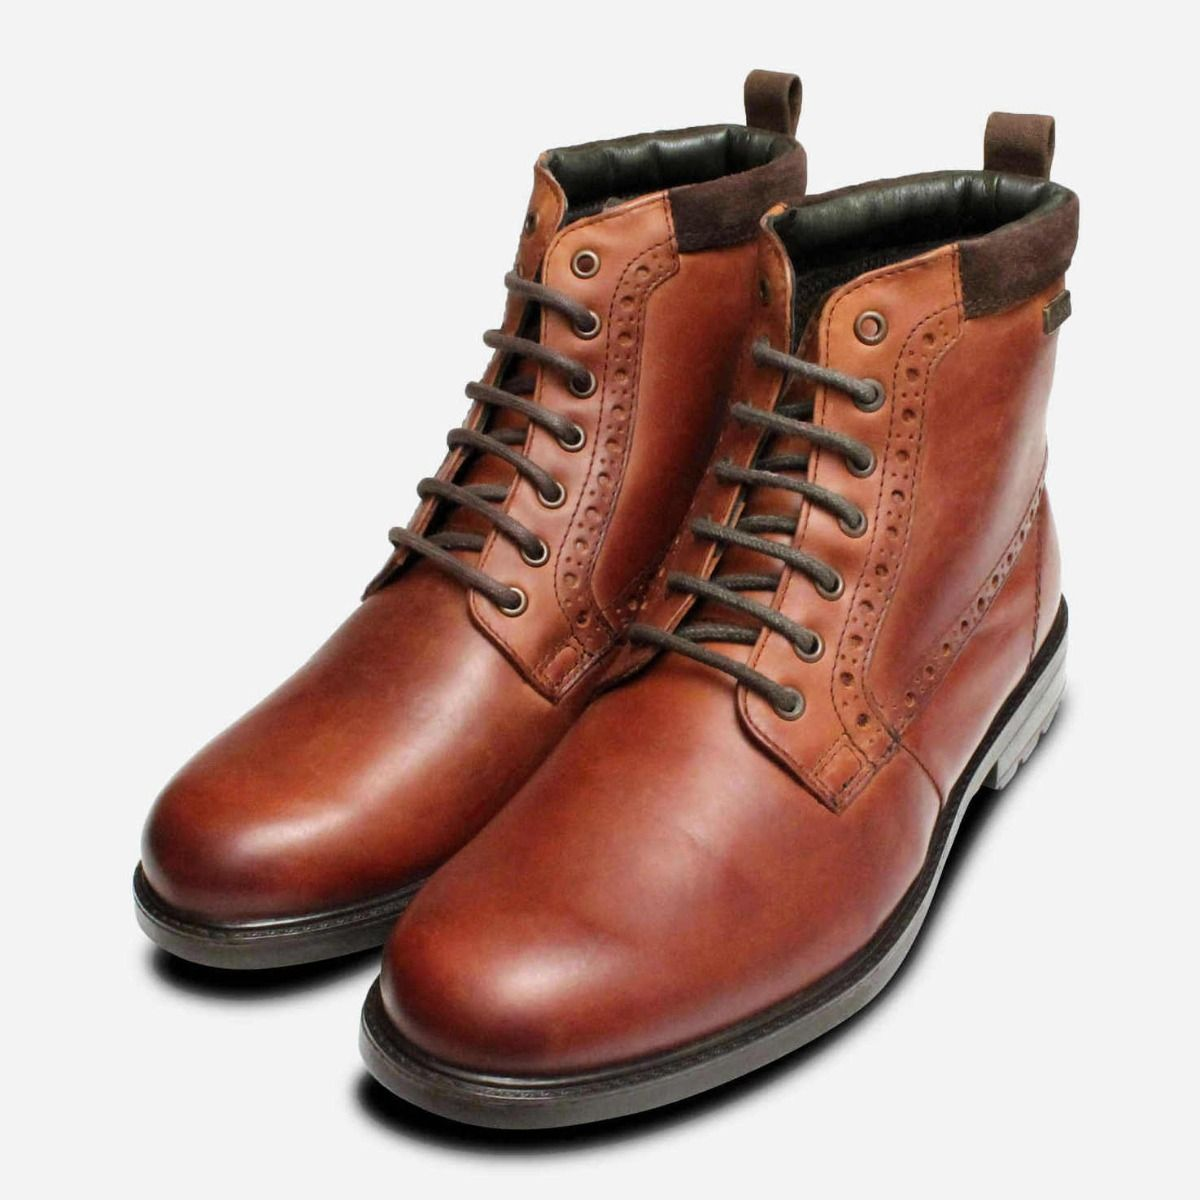 06a20a72ac93 Barbour Hury Mens Walking Boots in Waxy Tan Leather